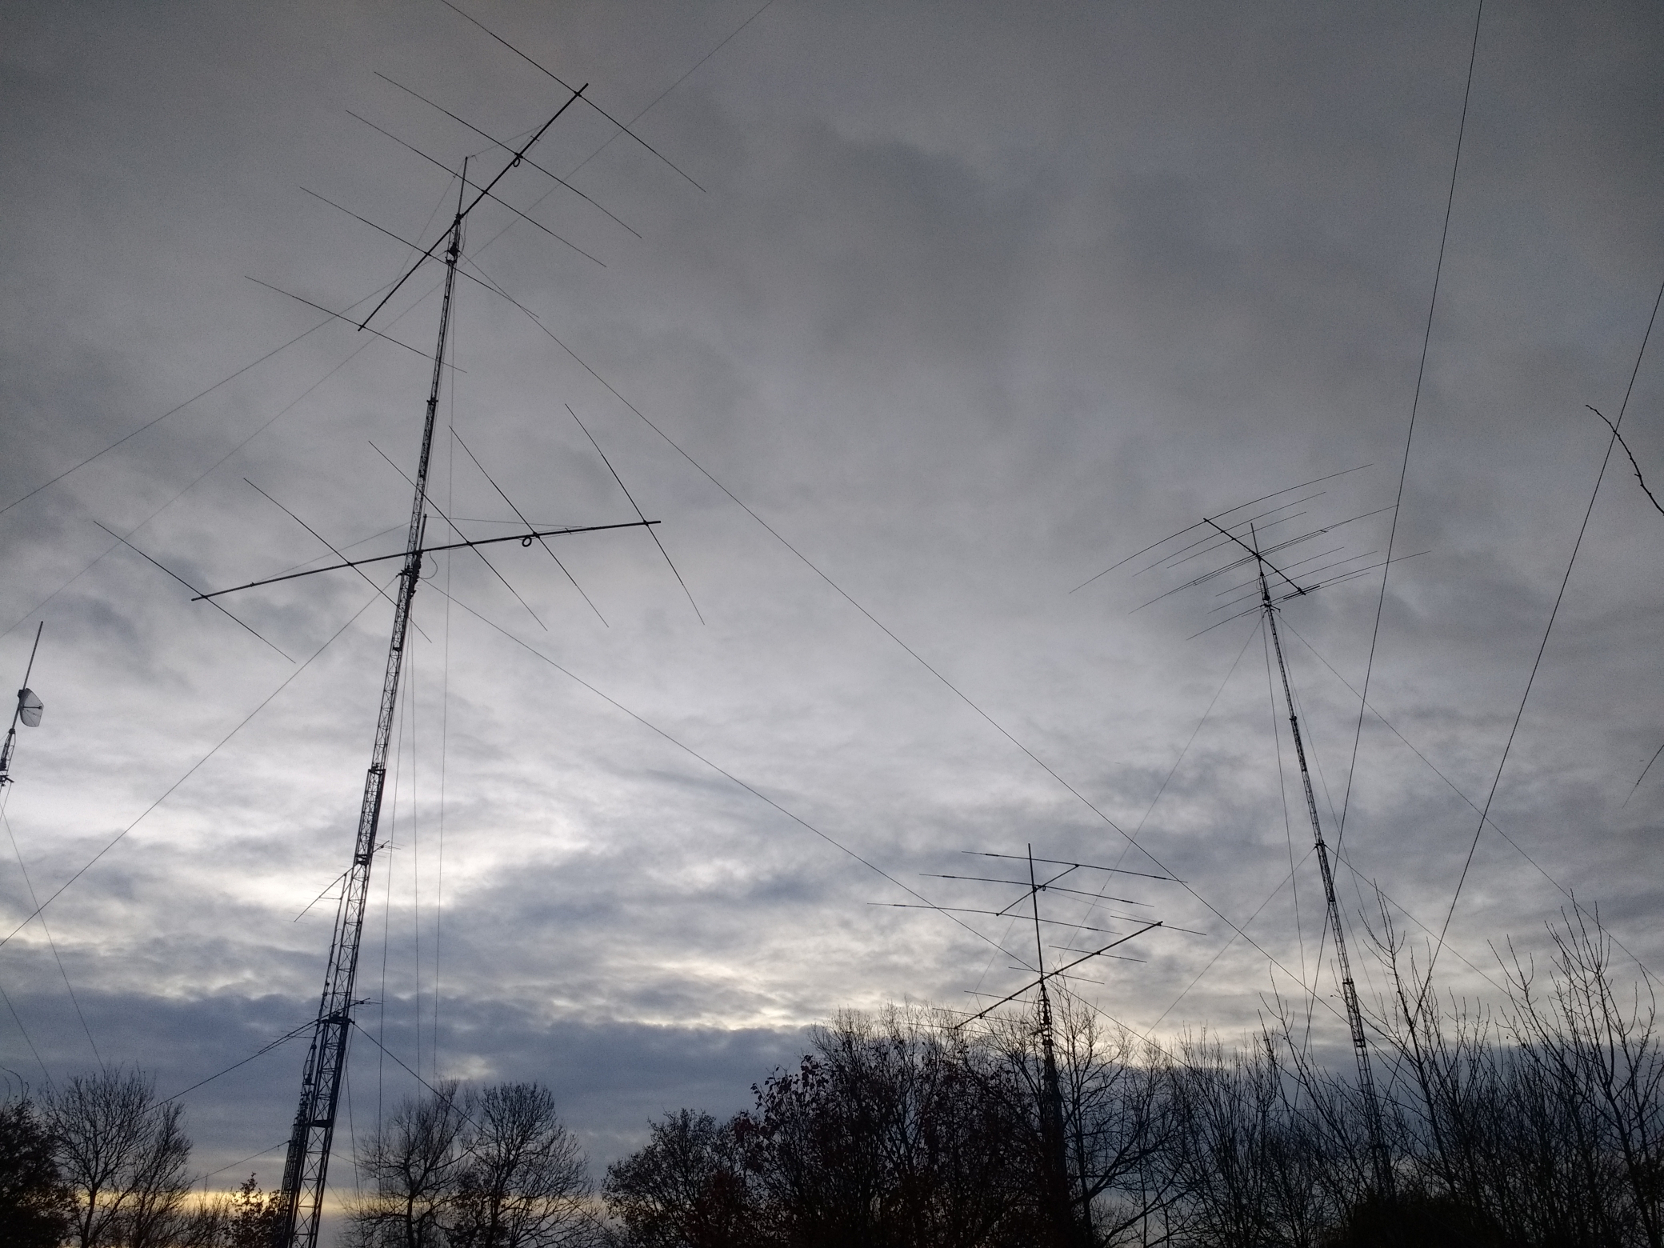 Some more M6T antennas, this time at dusk.